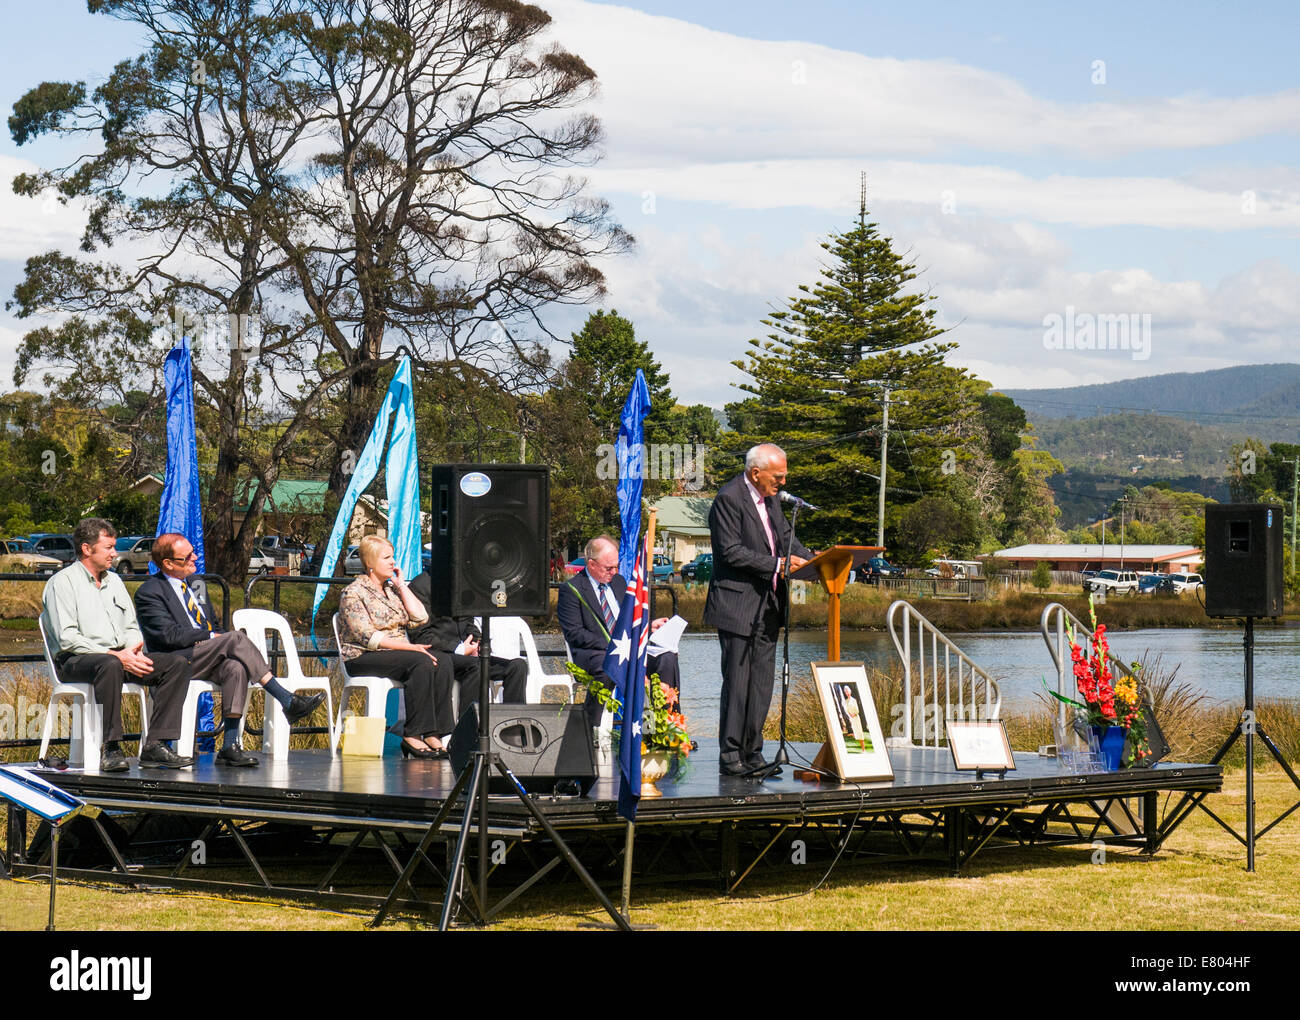 Local dignitary speaking at an Australian citizenship ceremony staged in Kingston, Tasmania, on Australia Day, January - Stock Image